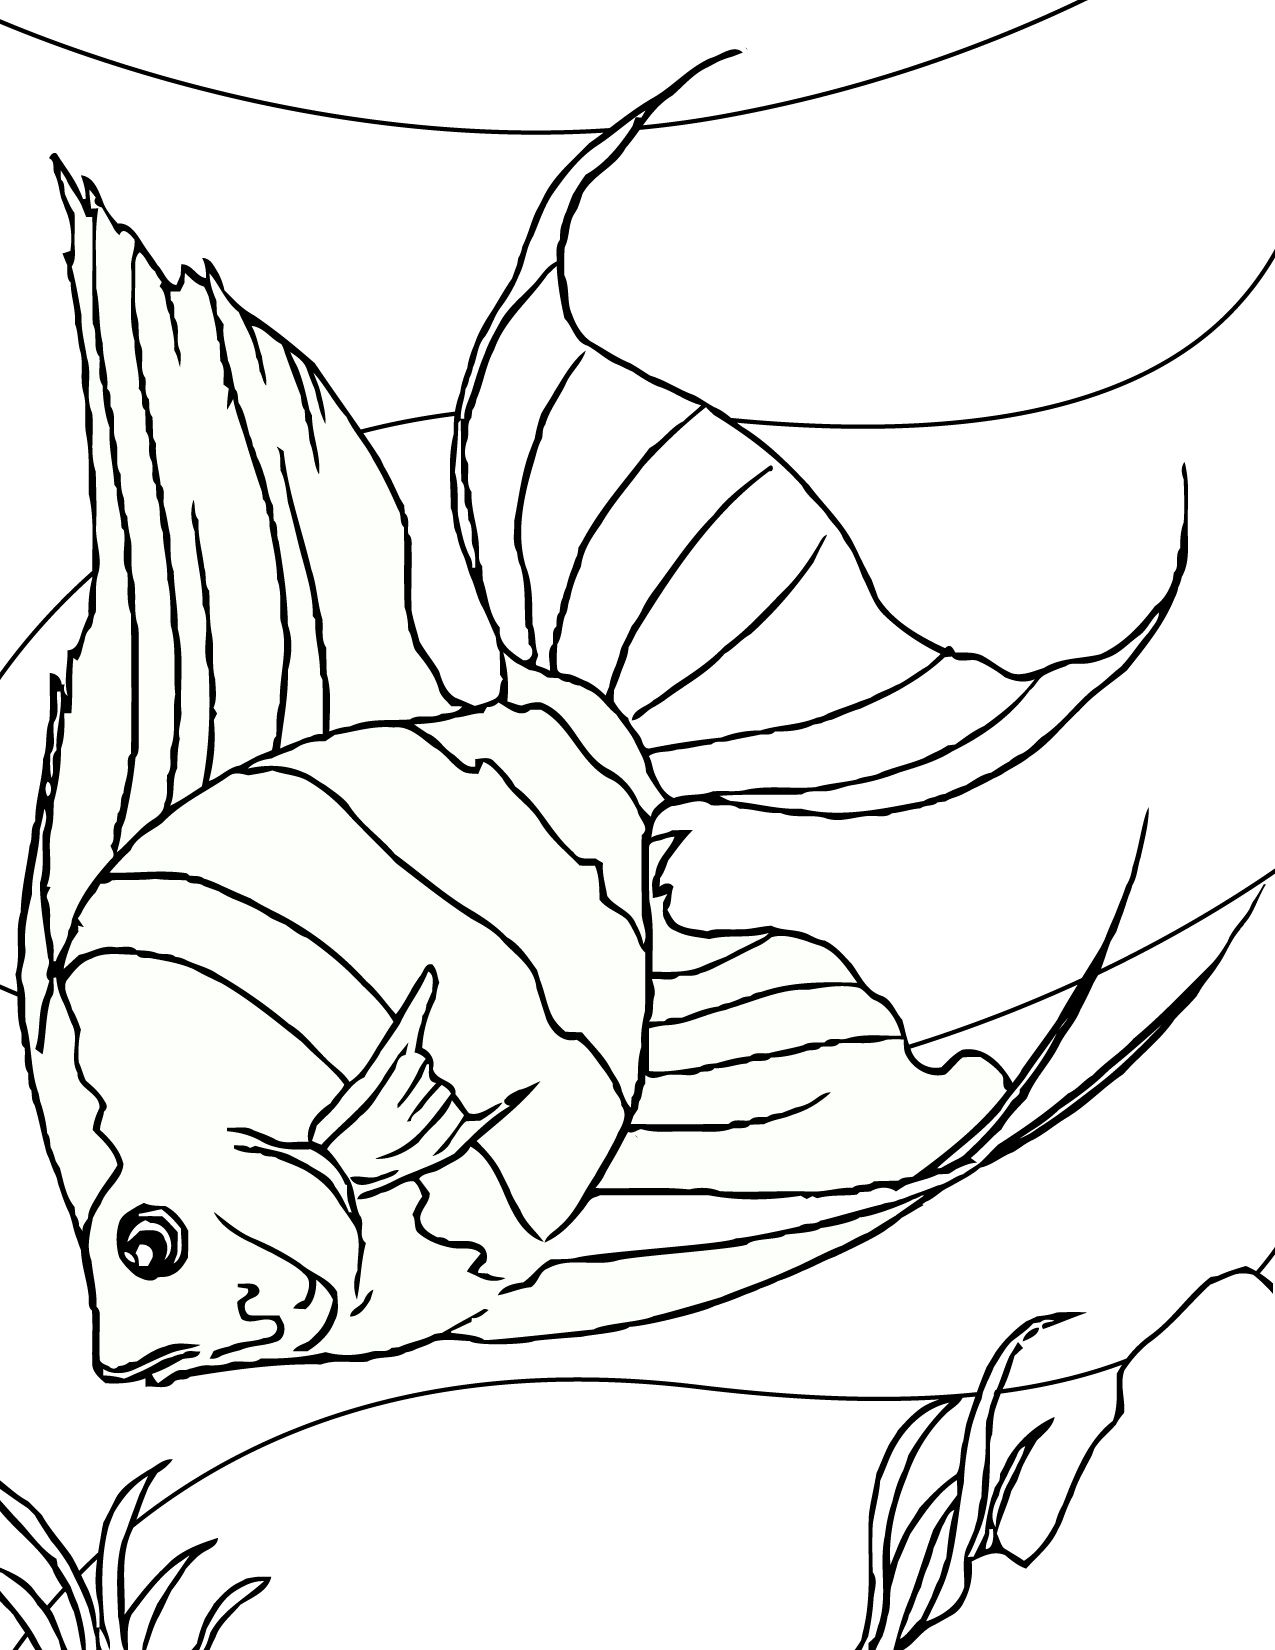 Angelfish Coloring Page - Handipoints | Wood burning | Pinterest ...